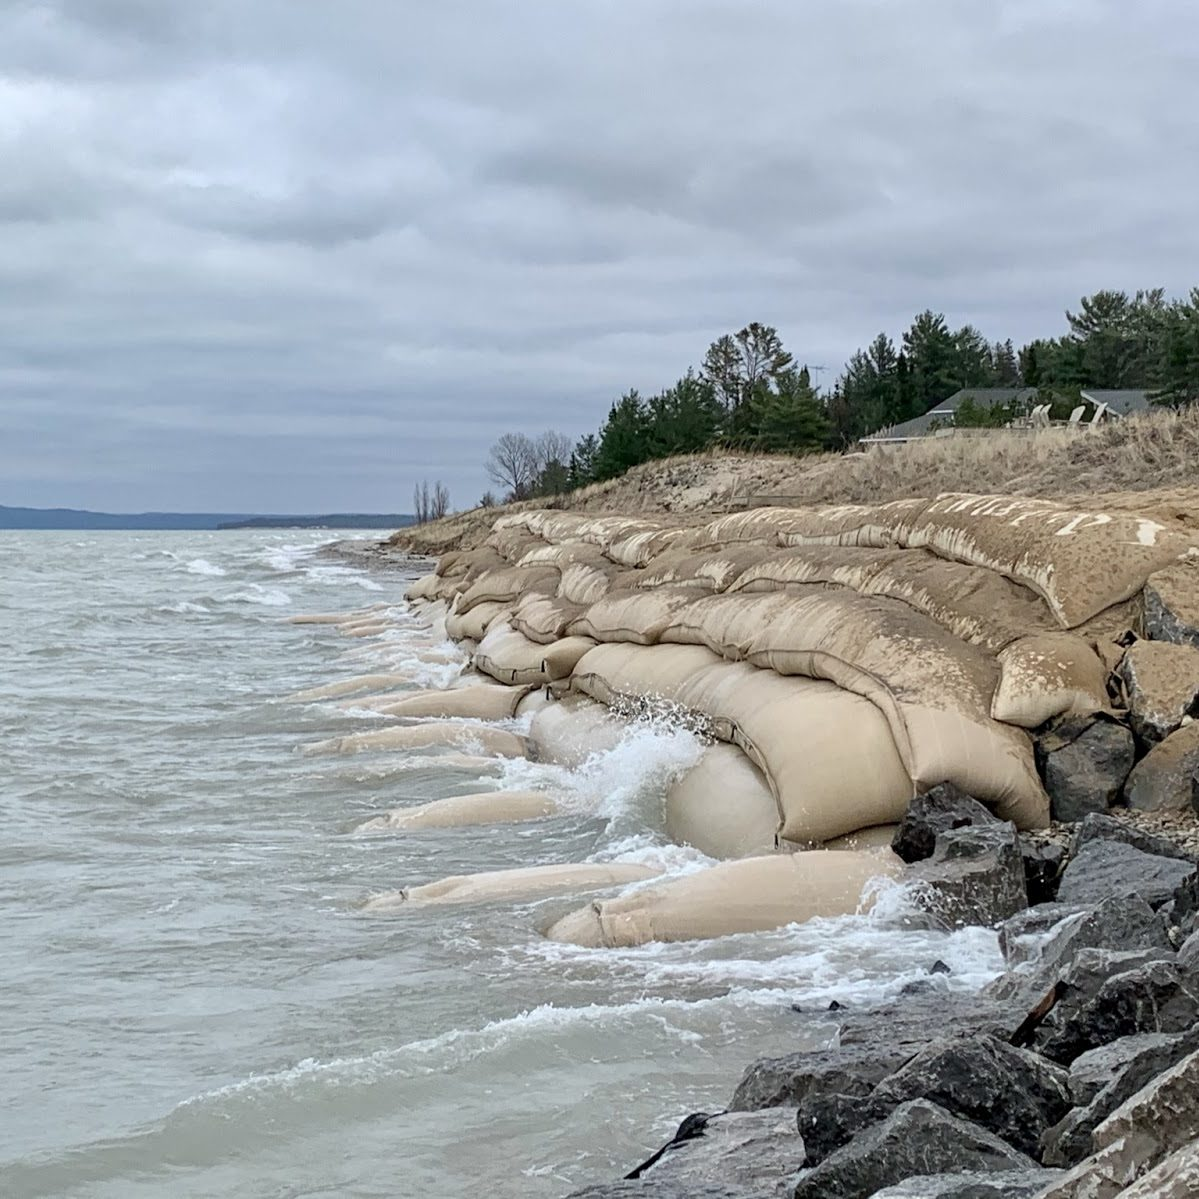 geotextiles and sandbags shoreline protection